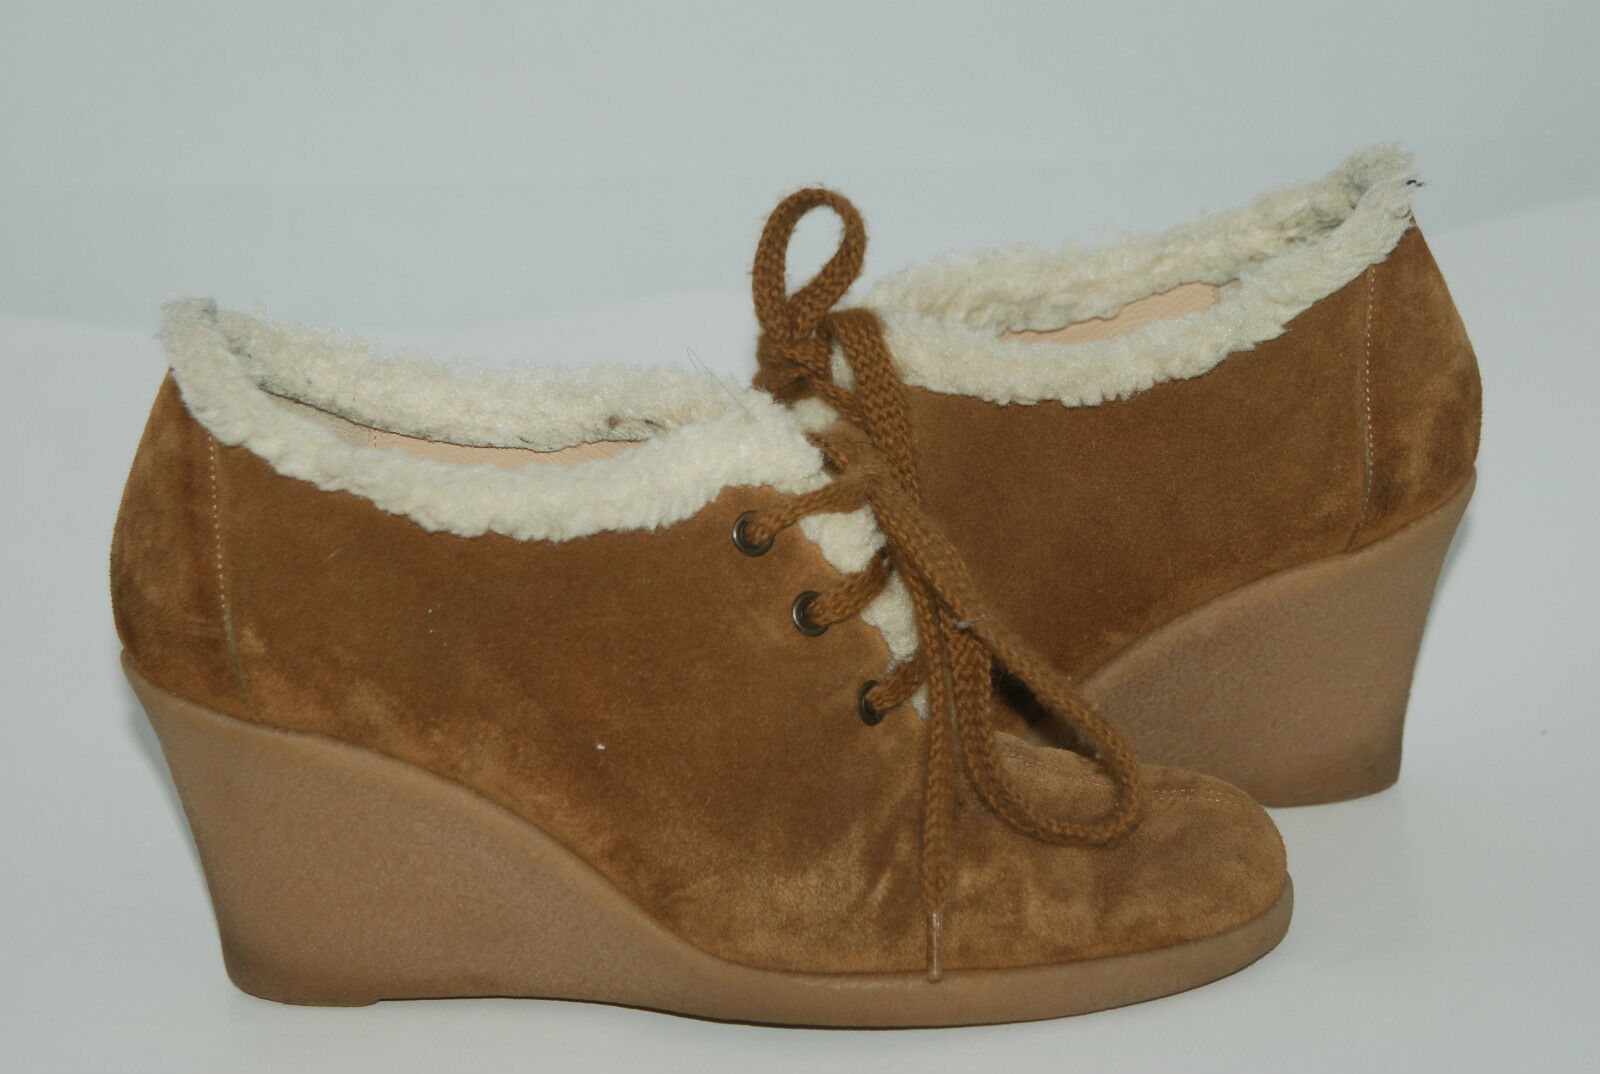 KORS MICHEAL TIE KORS 1 BROWN SUEDE TIE MICHEAL UP RUBBER SOLE BOOTIES SZ 7.5 239d1d